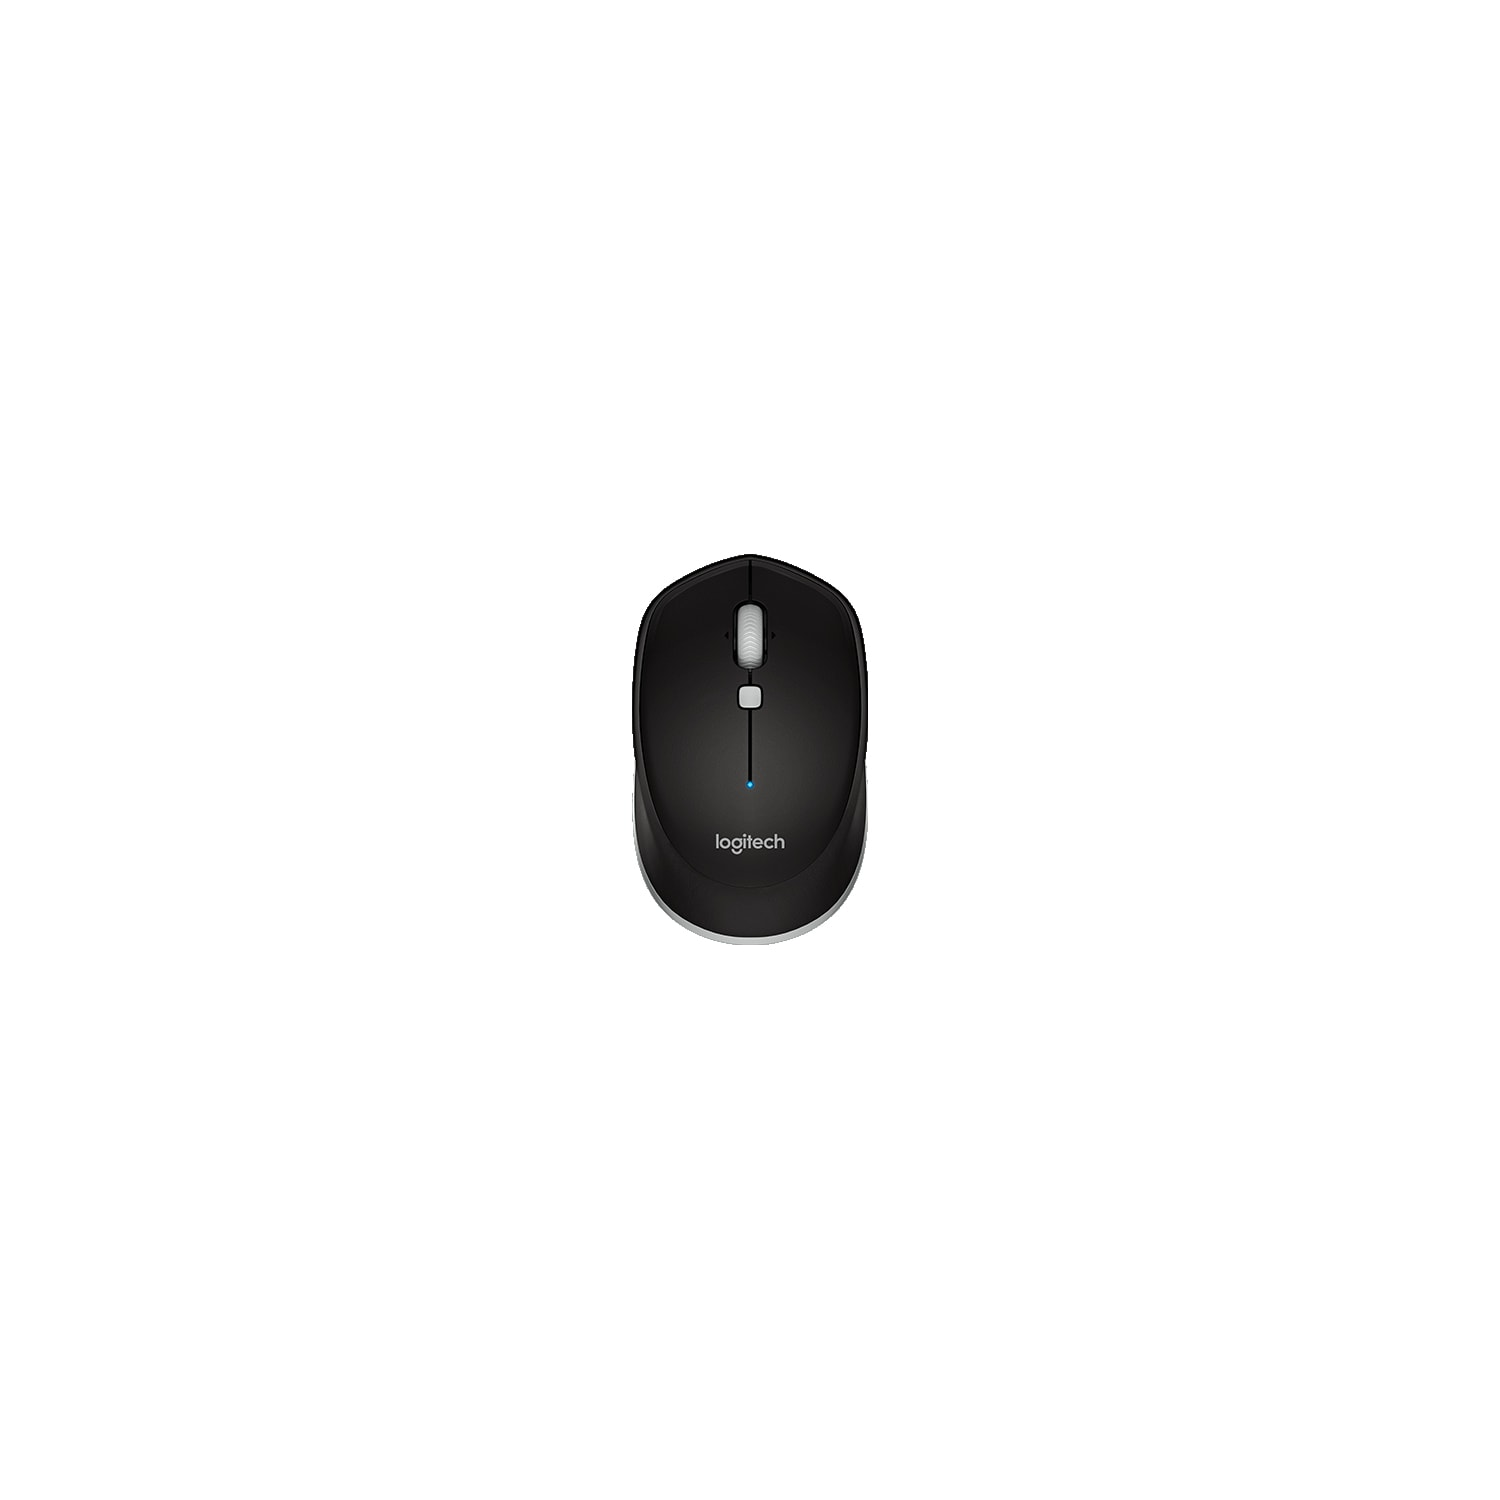 Logitech Wireless Mouse Blinking Red Light On Top Hd Tv Not Clear Tv Lg 65 Full Hd Sd Tf Card Camera Reader: Buy Logitech M337 Mouse